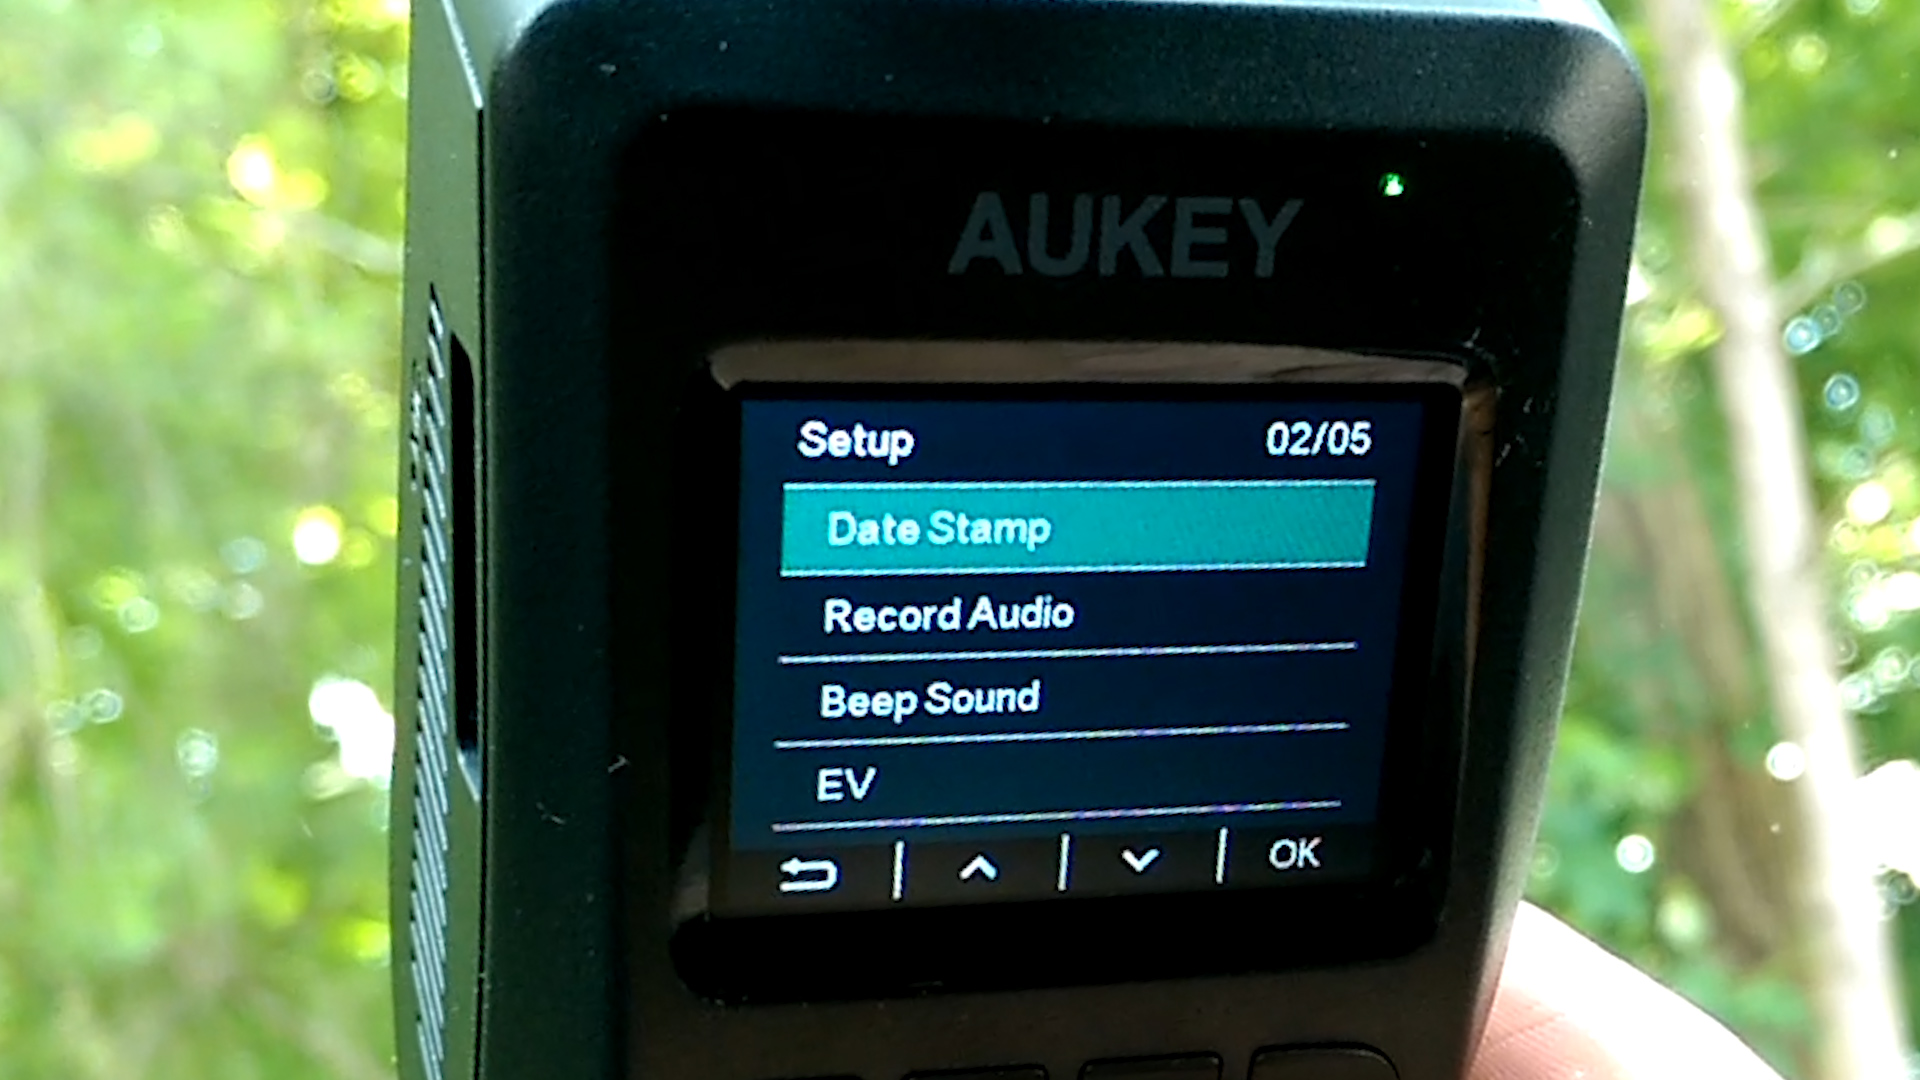 aukey dashcam screen